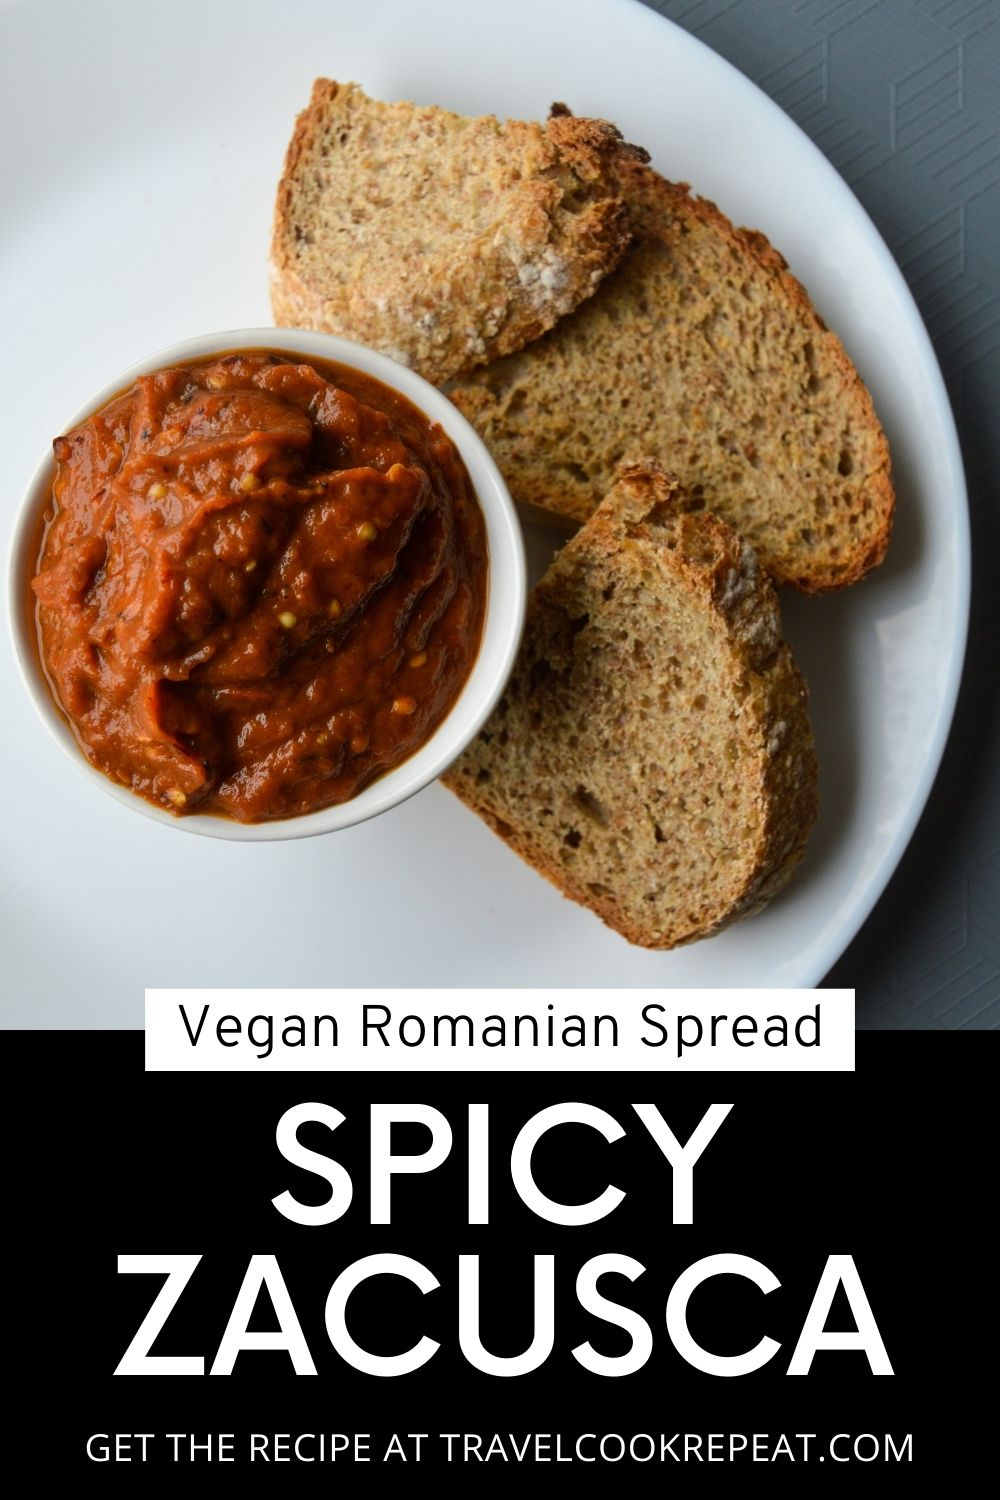 Spicy Zacusca - Romanian Vegetable Spread